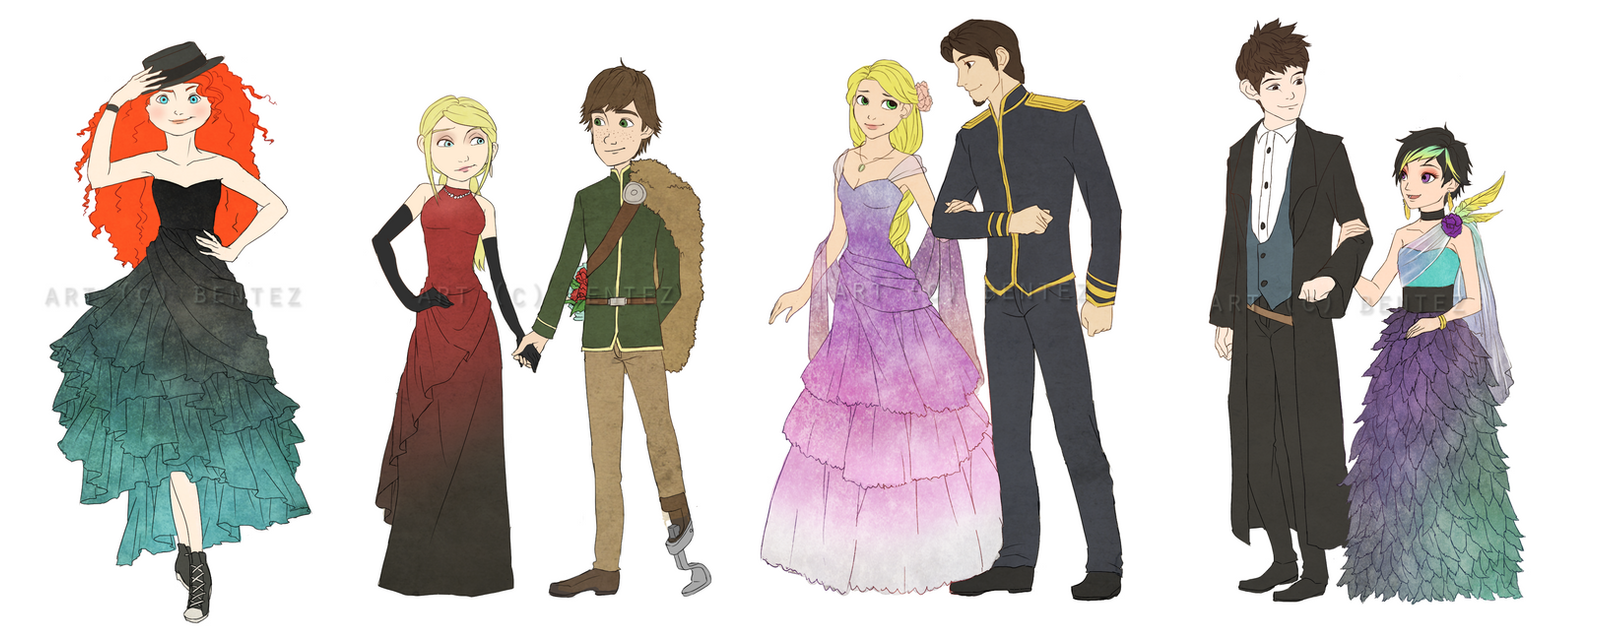 Big Four: Yule Ball by benteja